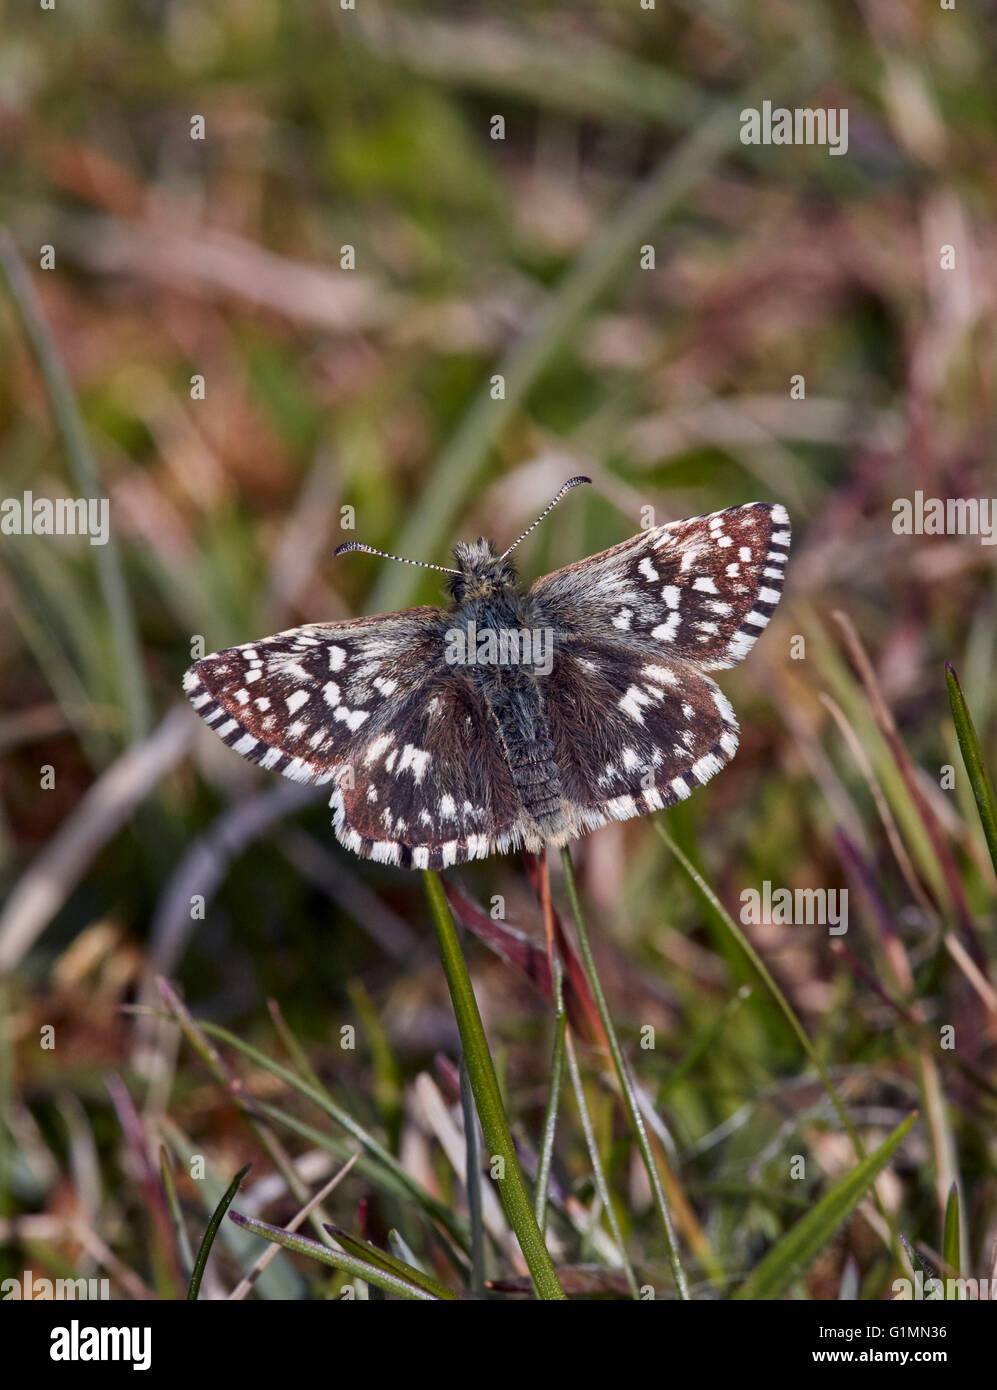 Grizzled Skipper butterfly. Sussex, England. - Stock Image